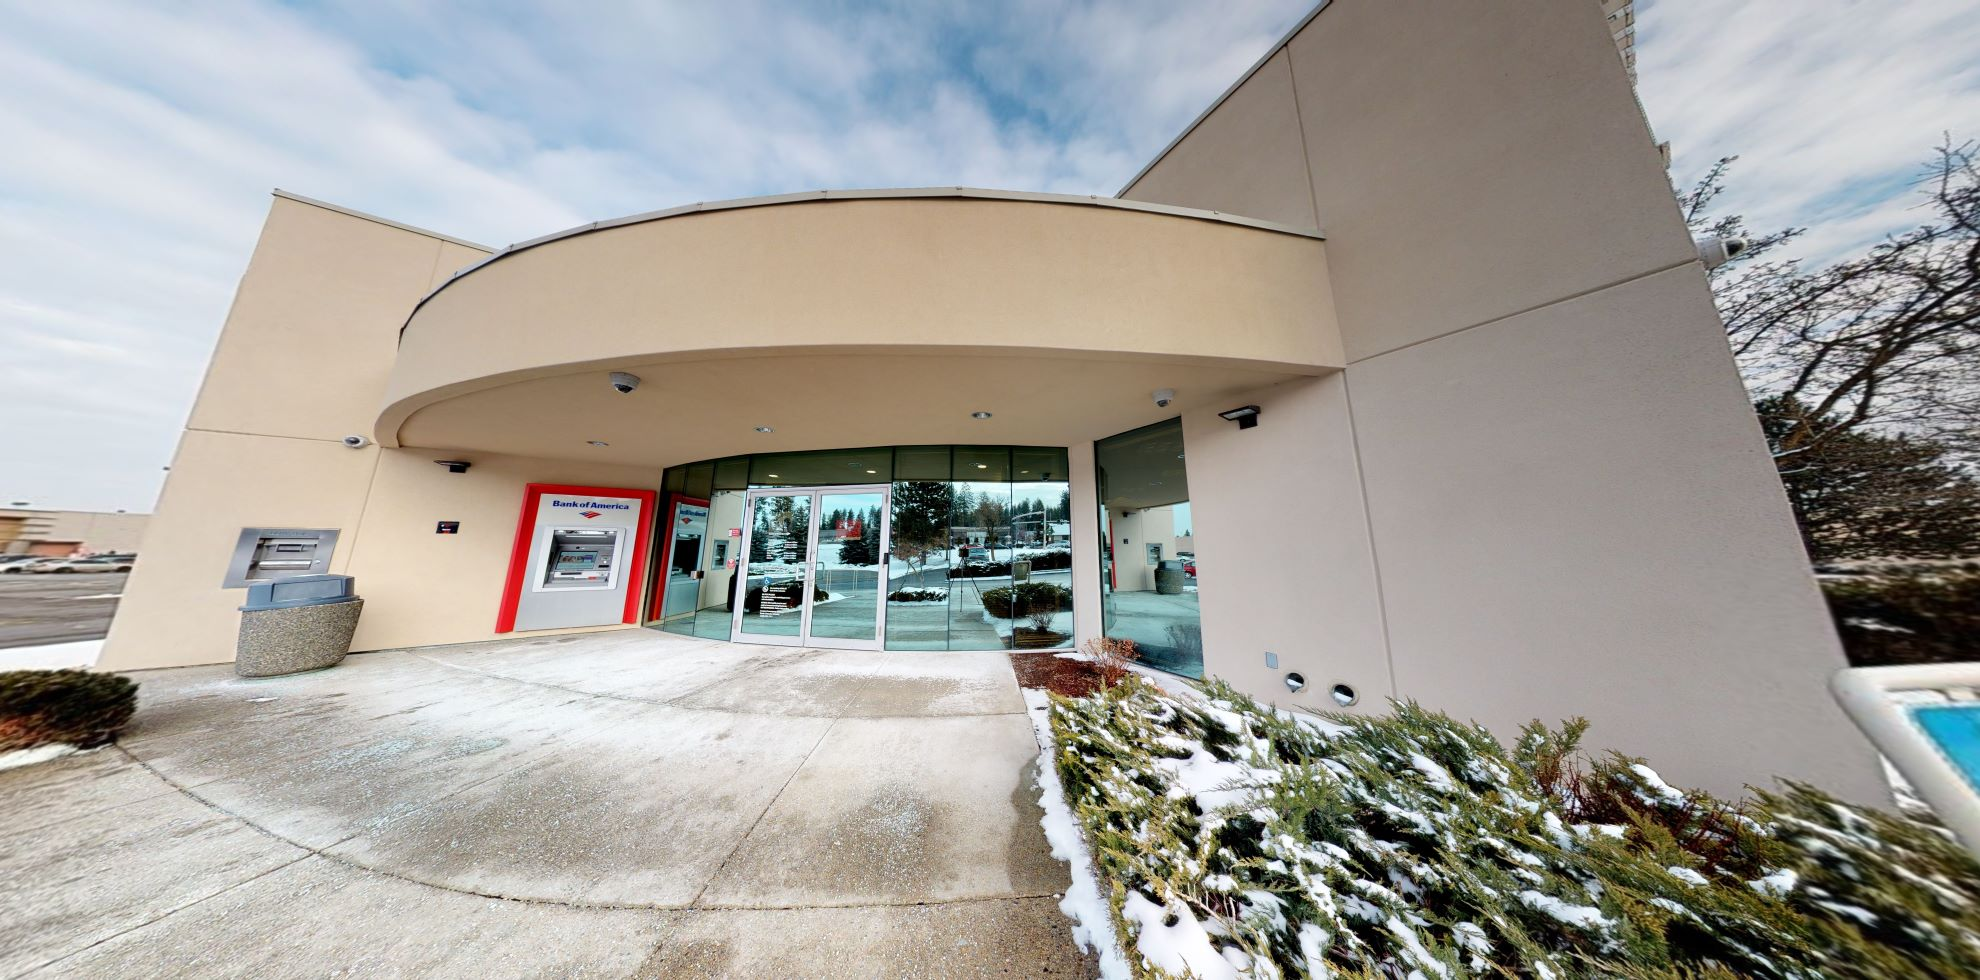 Bank of America financial center with drive-thru ATM and teller | 357 W Canfield Ave, Coeur D Alene, ID 83815